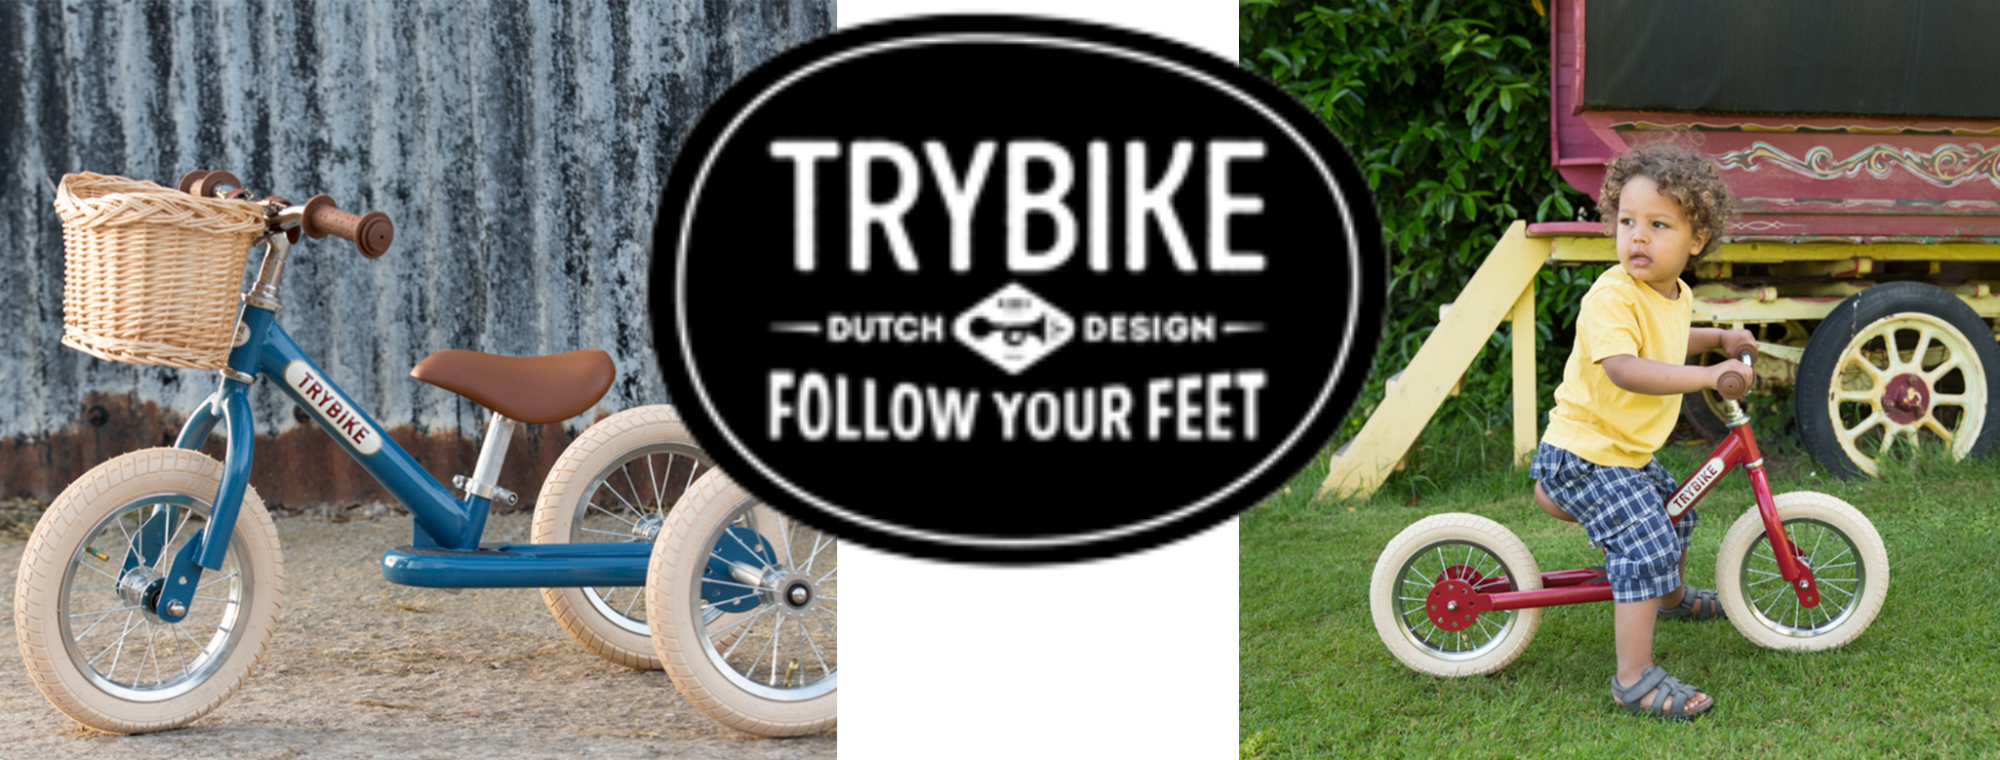 2-in-1 balance bike made of steel. Like the Trybike Wood the Trybike Steel is an adjustable balance bike that can be converted from a tricycle into a bicycle. With the same benefits as the Trybike Wood, learning to walk and ride made easy.